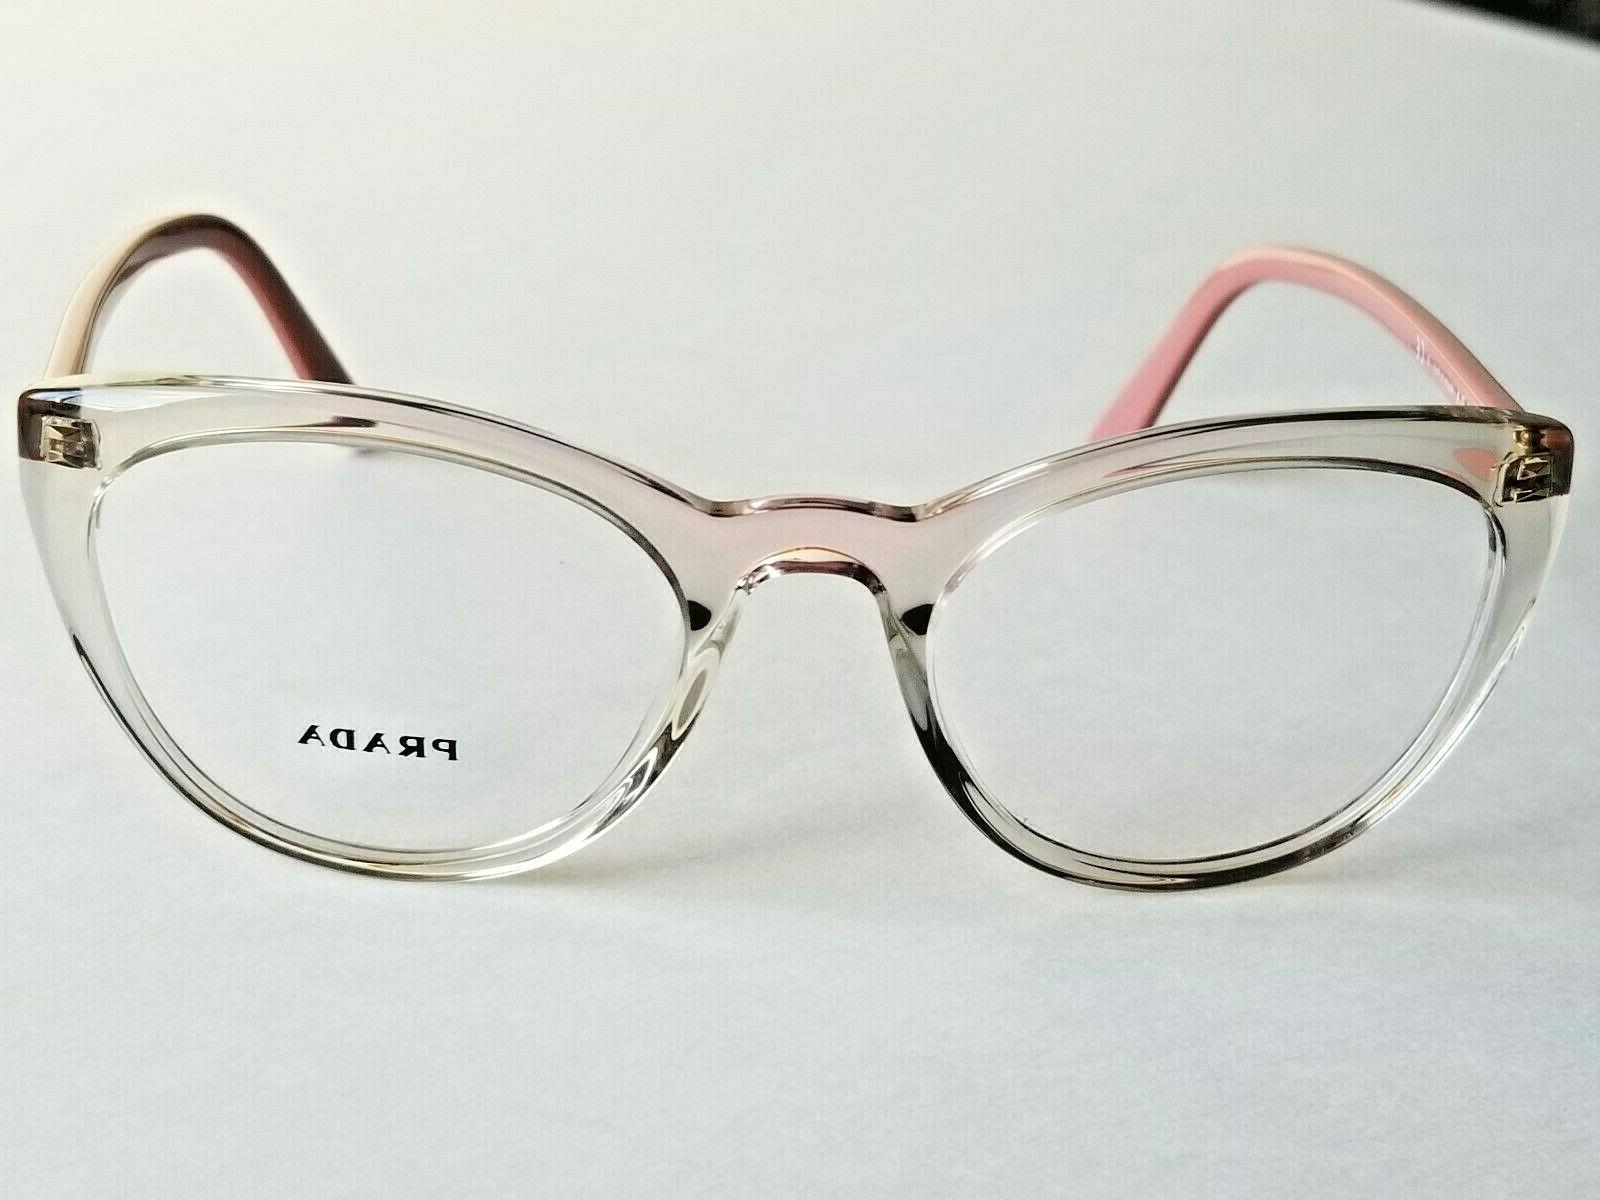 dd60b0fe3f Brand New Prada Women s Designer Prescription Eyeglass Frames